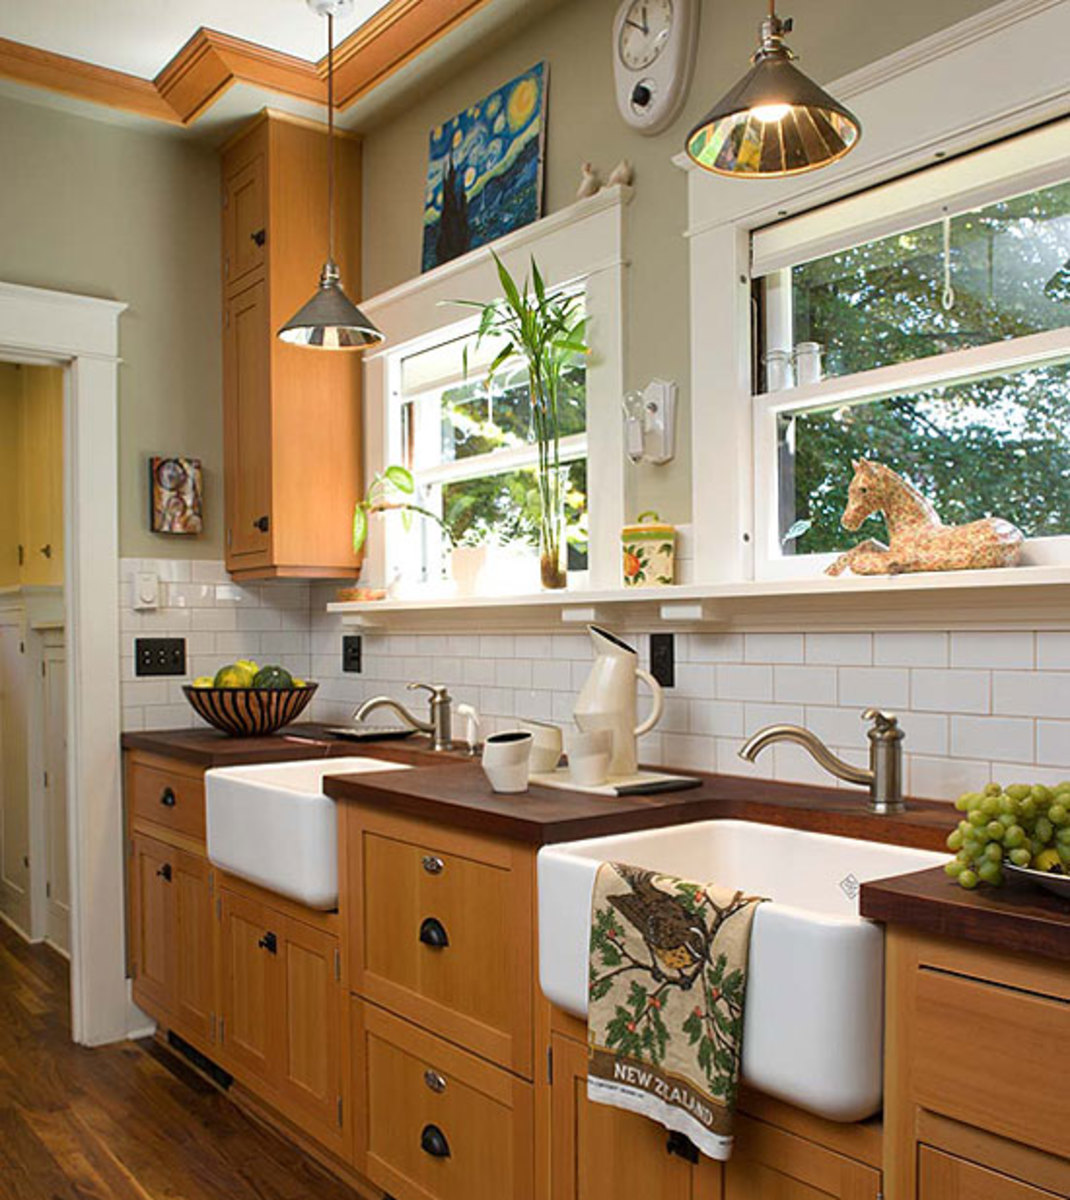 Victorian Kitchen Design Ideas: Kitchen Sinks & Countertops: Go Trendy Or Timeless?